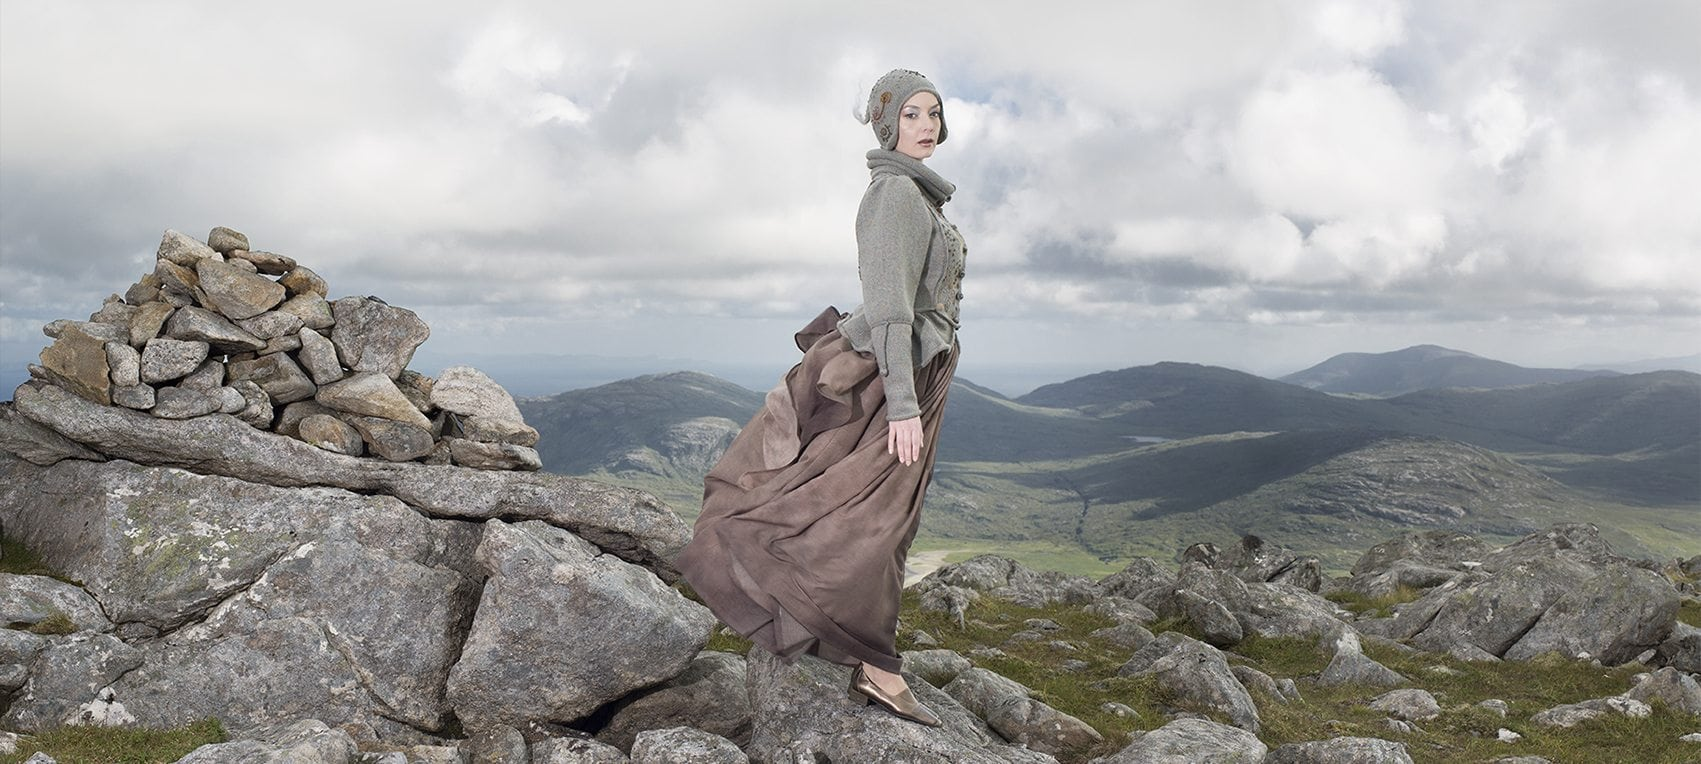 The Mountain Hare costume by Alice Starmore from the book Glamourie